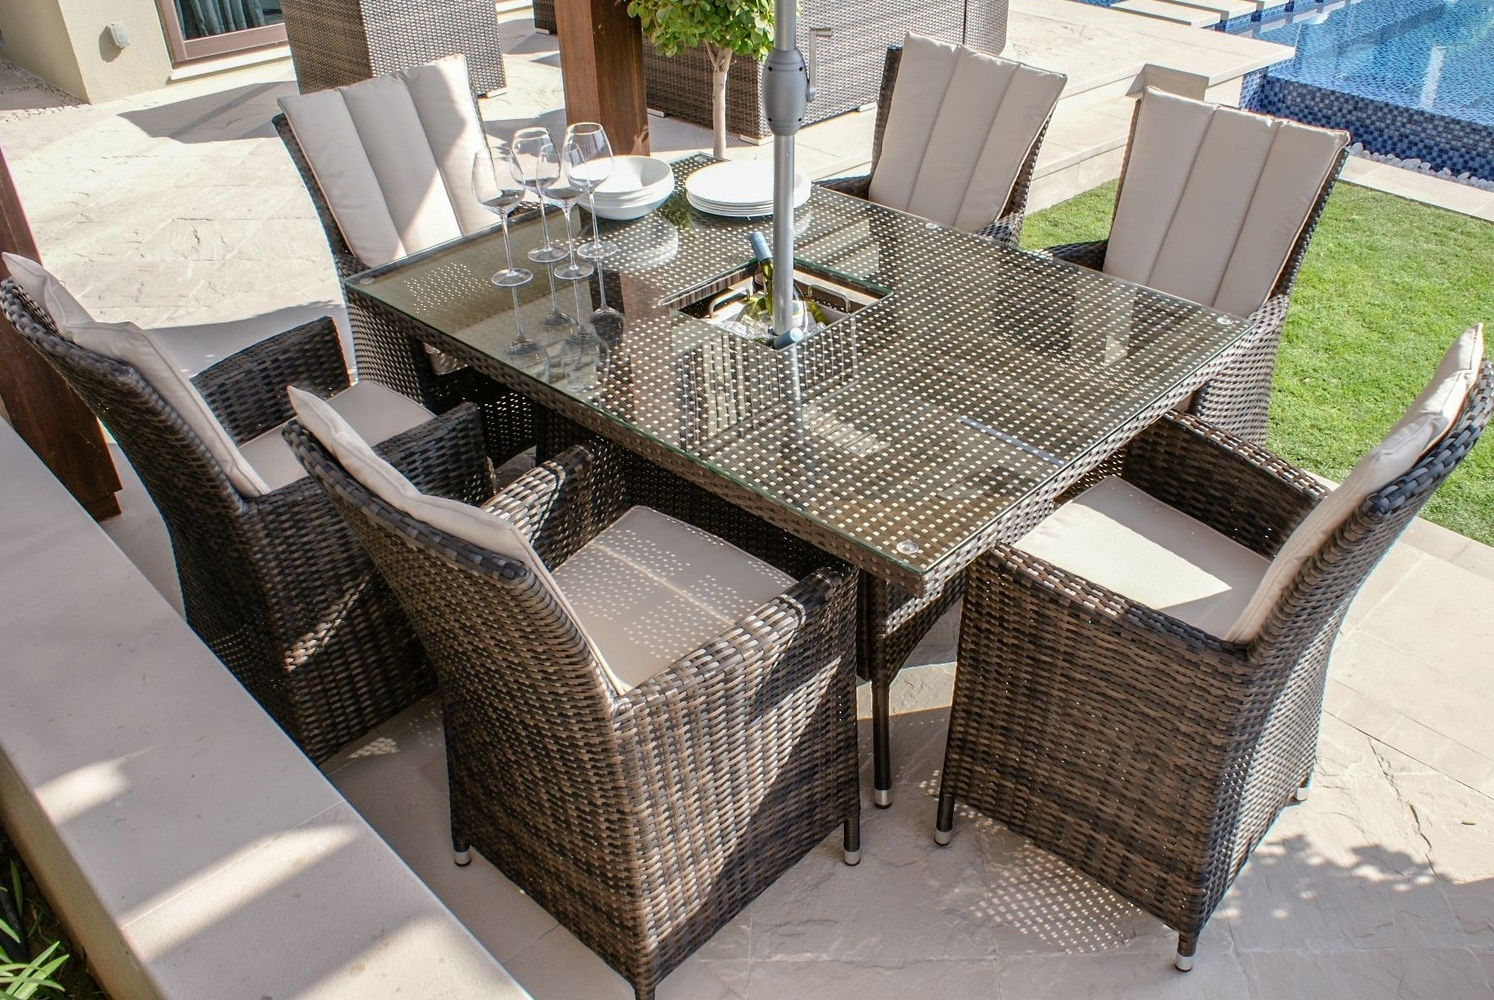 Widely Used Paris Dining Tables Inside Paris 6 Seater Rectangular Rattan Dining Set With Ice Bucket (View 19 of 25)